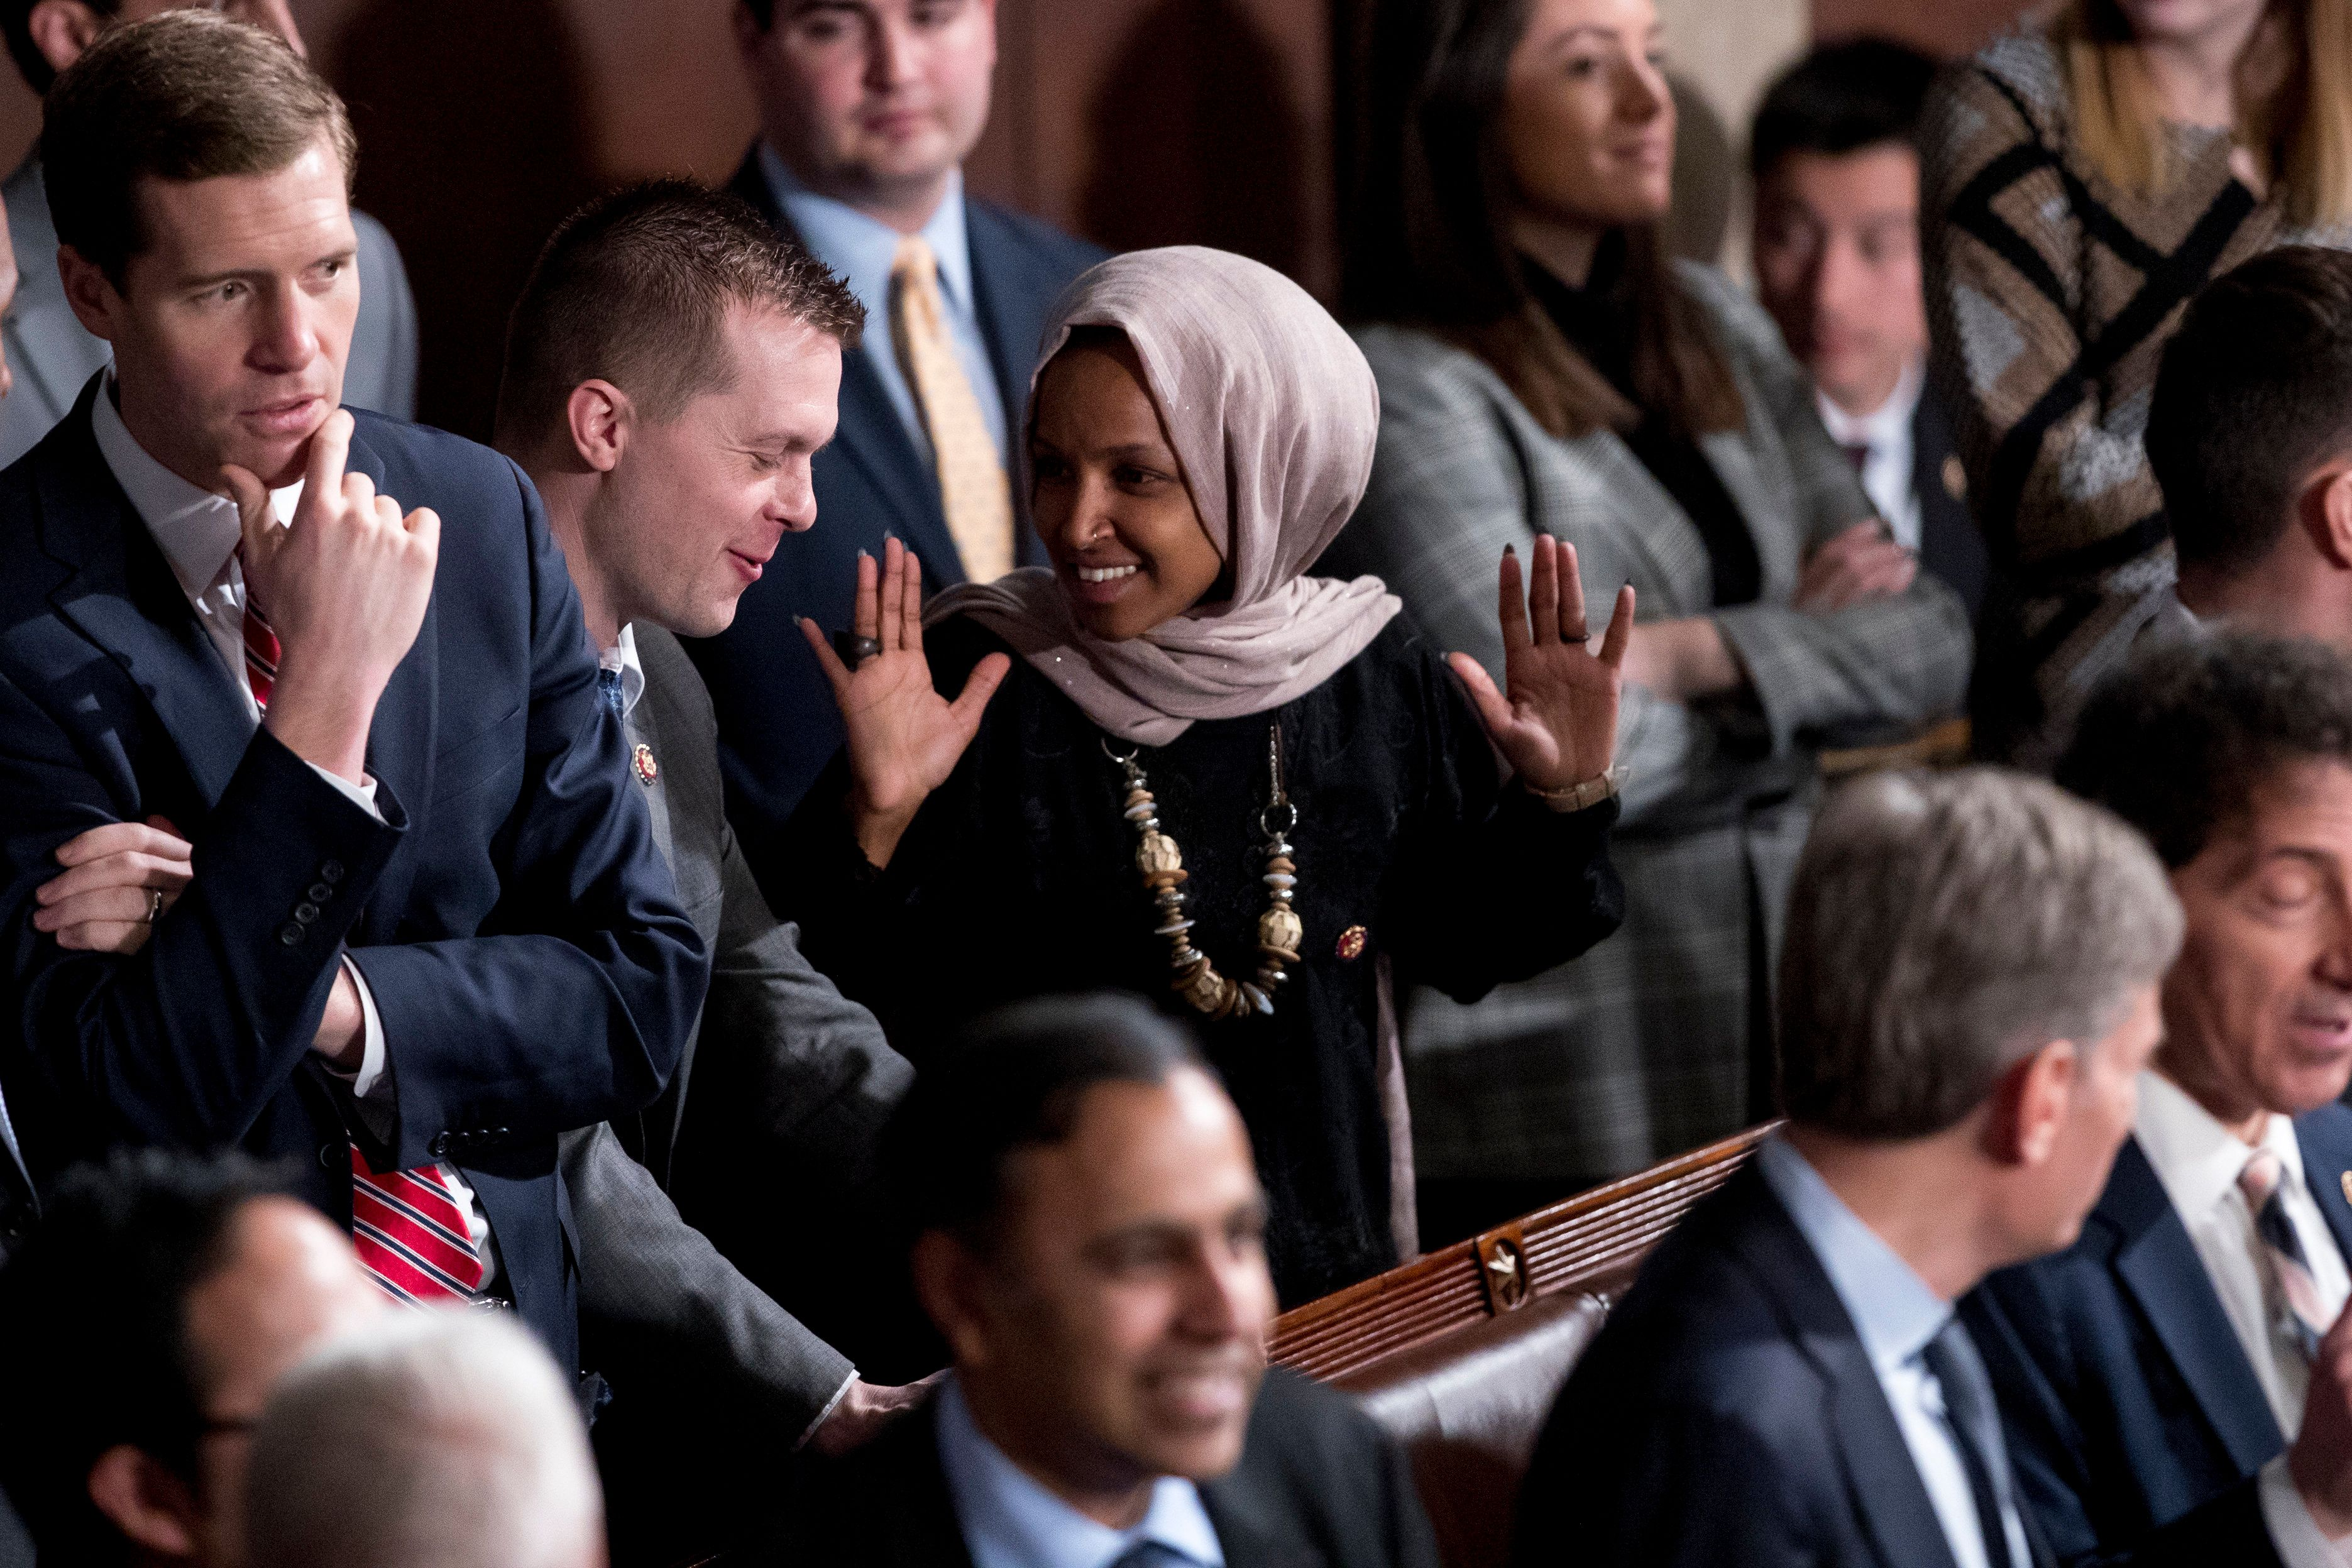 Supporters Have Omar's Back: Donations Surge Amid Death Threats